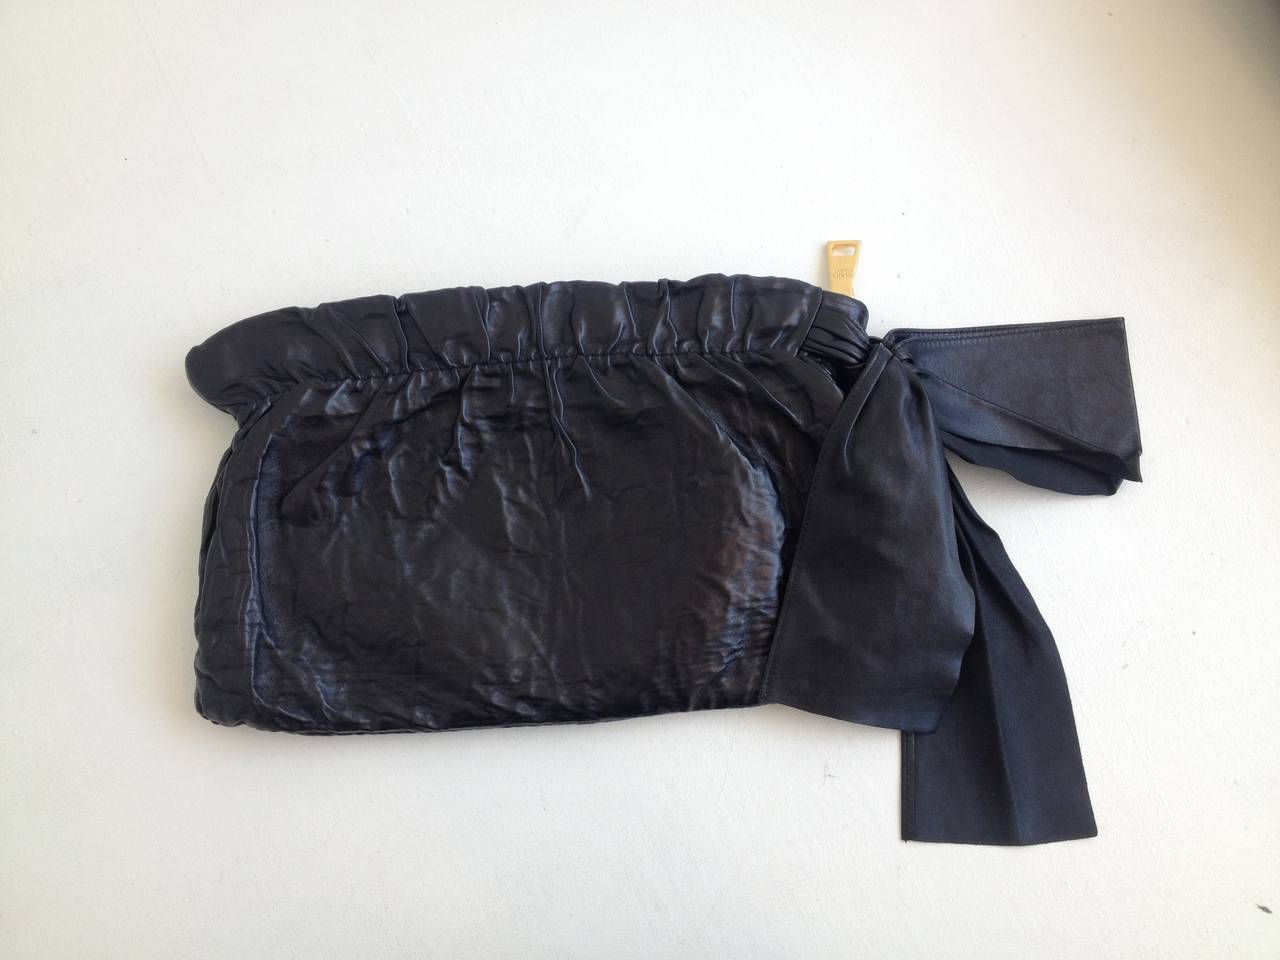 prada black purse leather - Prada Black Crinkly Leather Clutch with Bow For Sale at 1stdibs